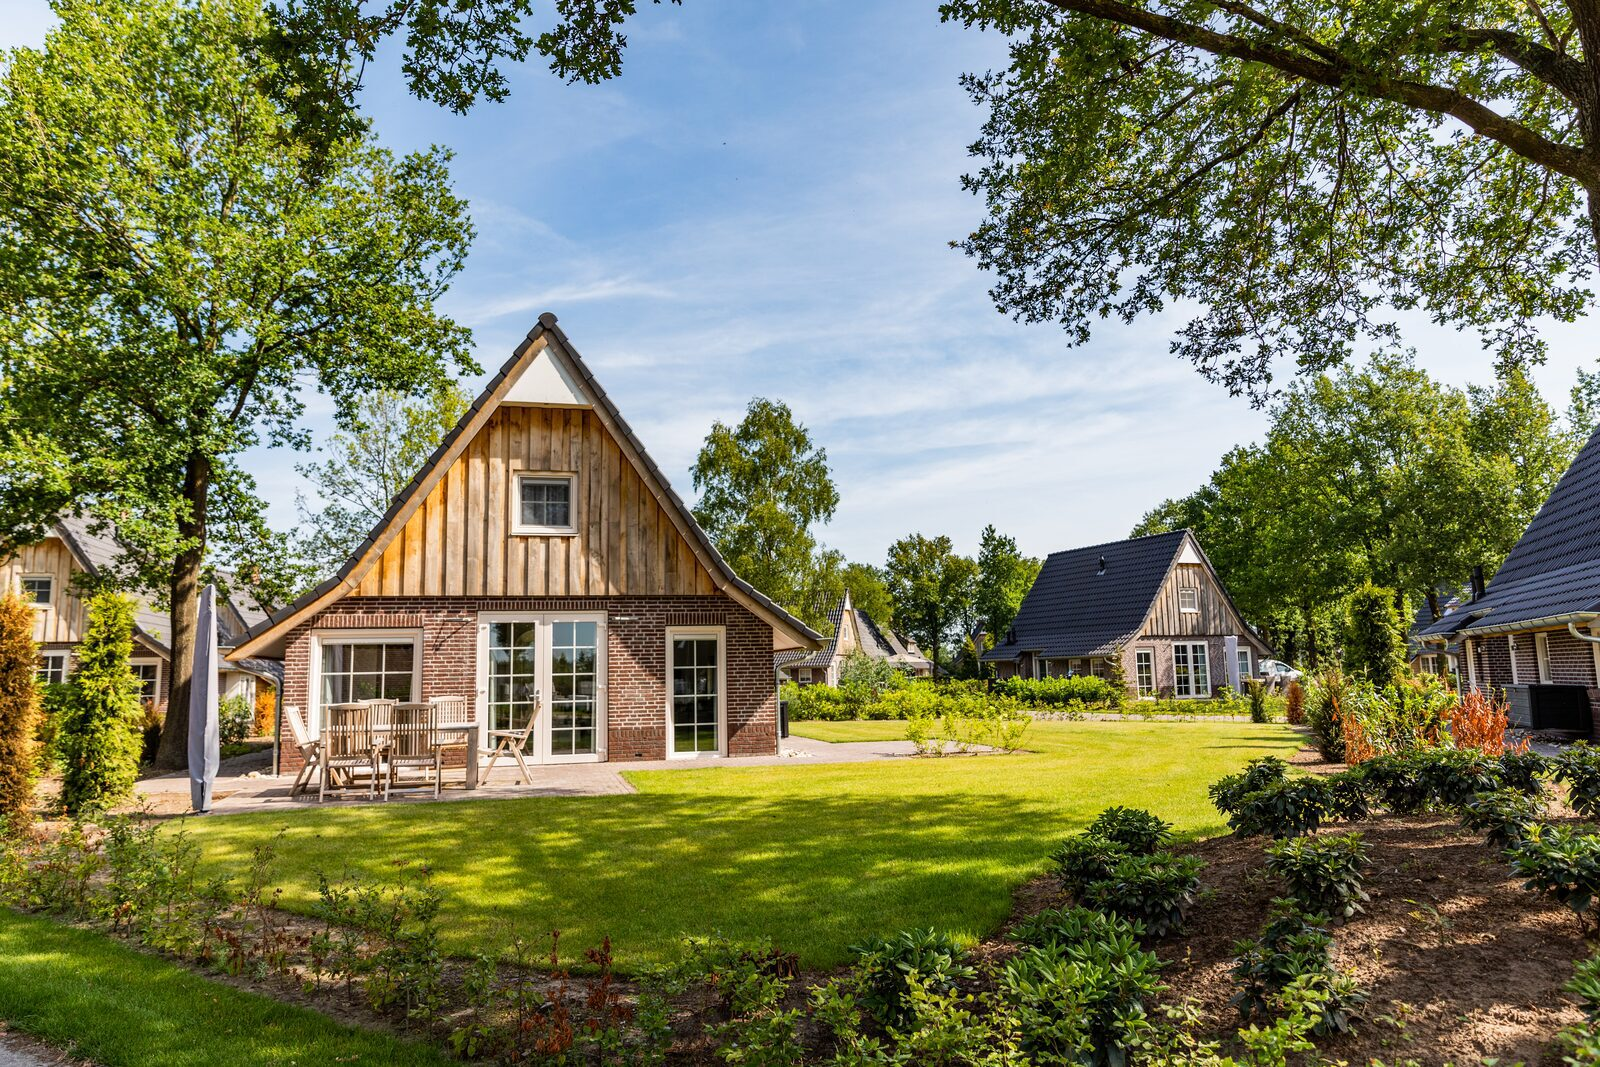 Luxury holiday homes Netherlands